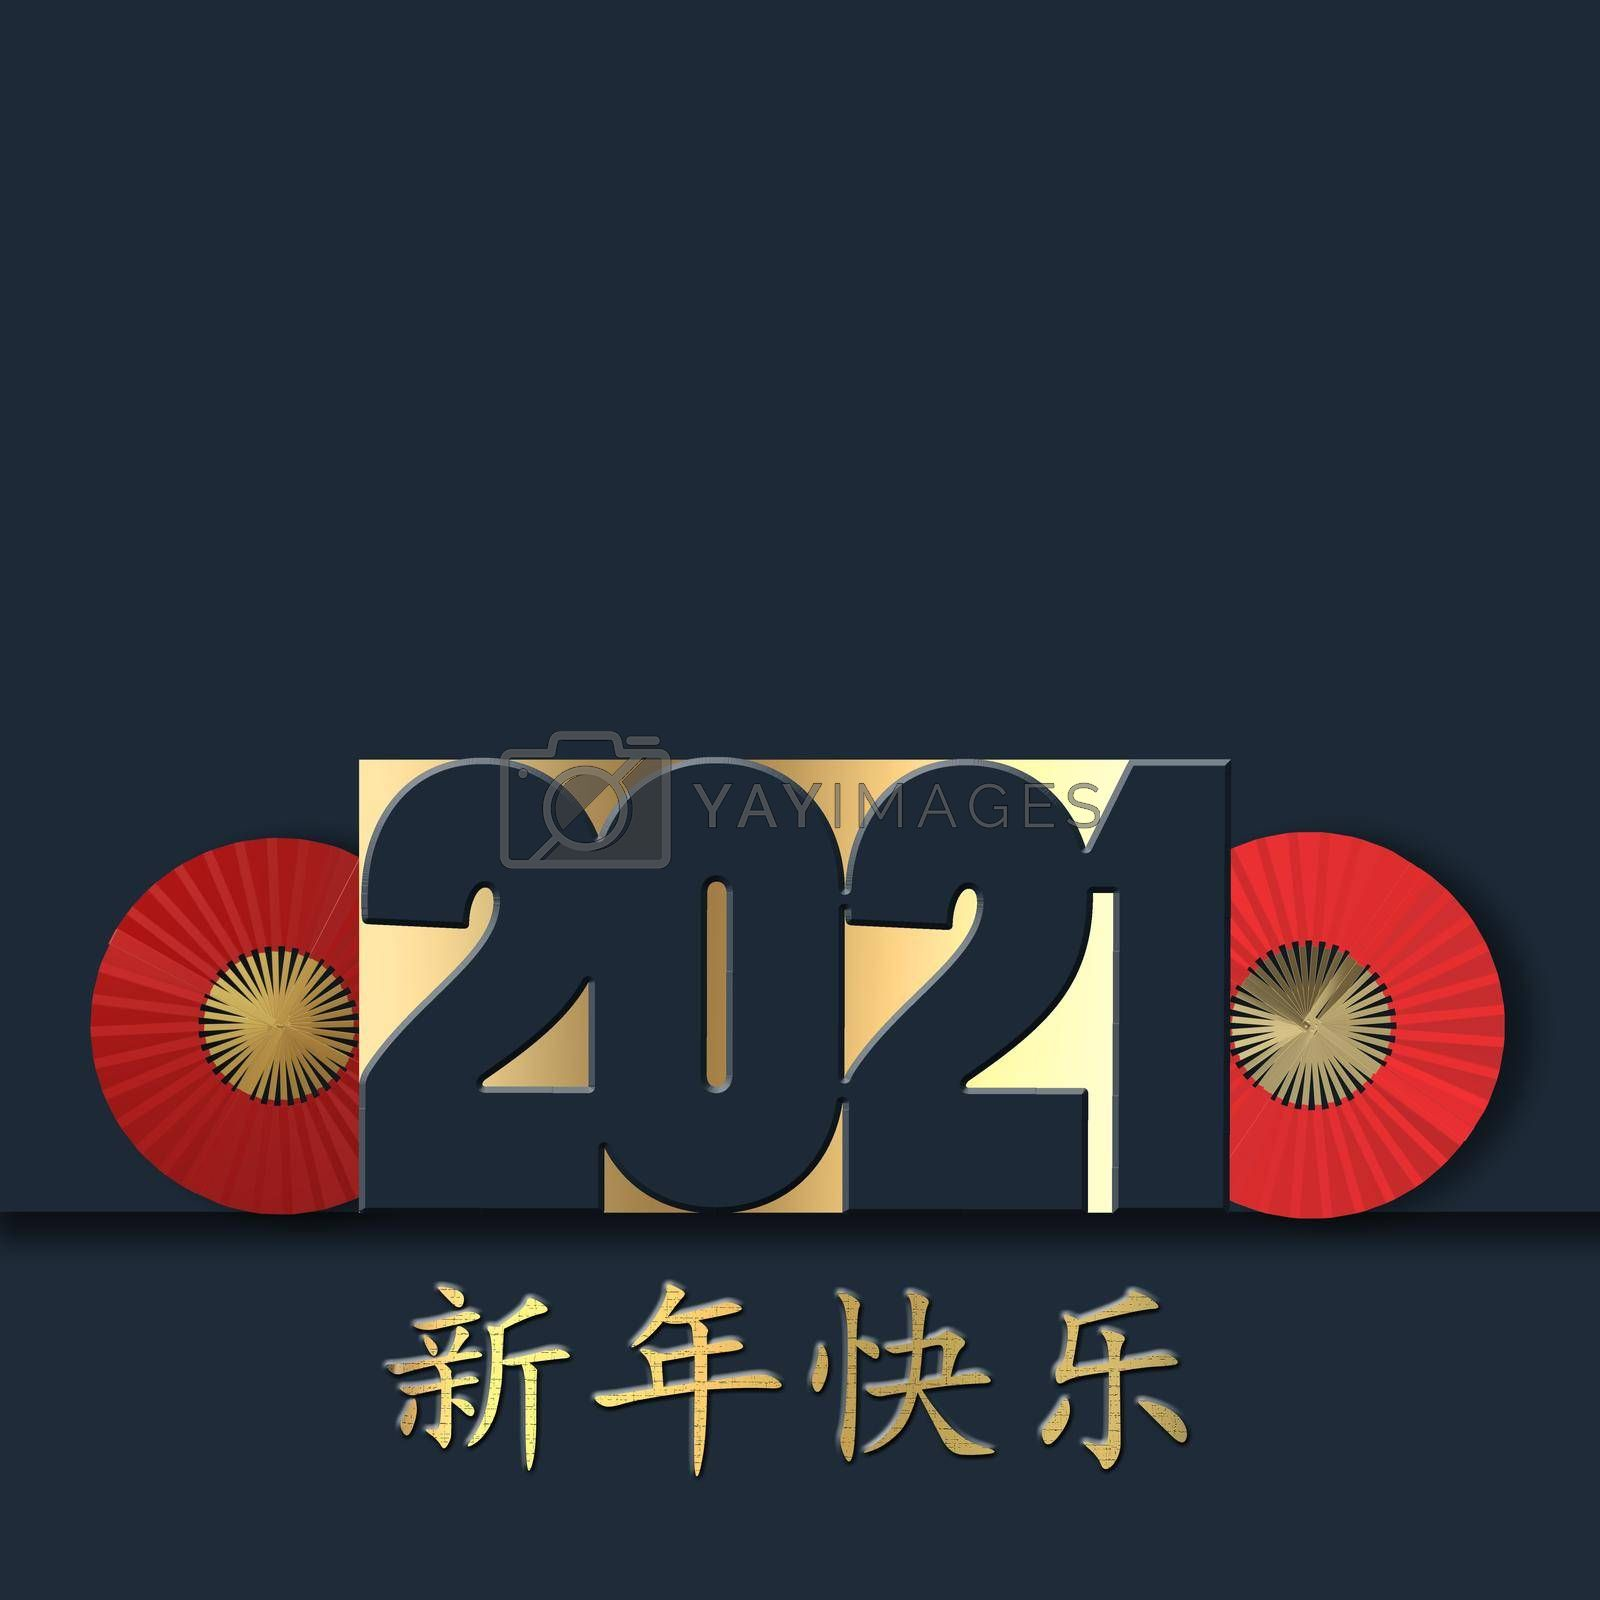 Chinese 2021 New Year on blue background. Gold text Happy Chinese new year, digit 2021, fan Design for greetings, oriental new year card. 3D illustration